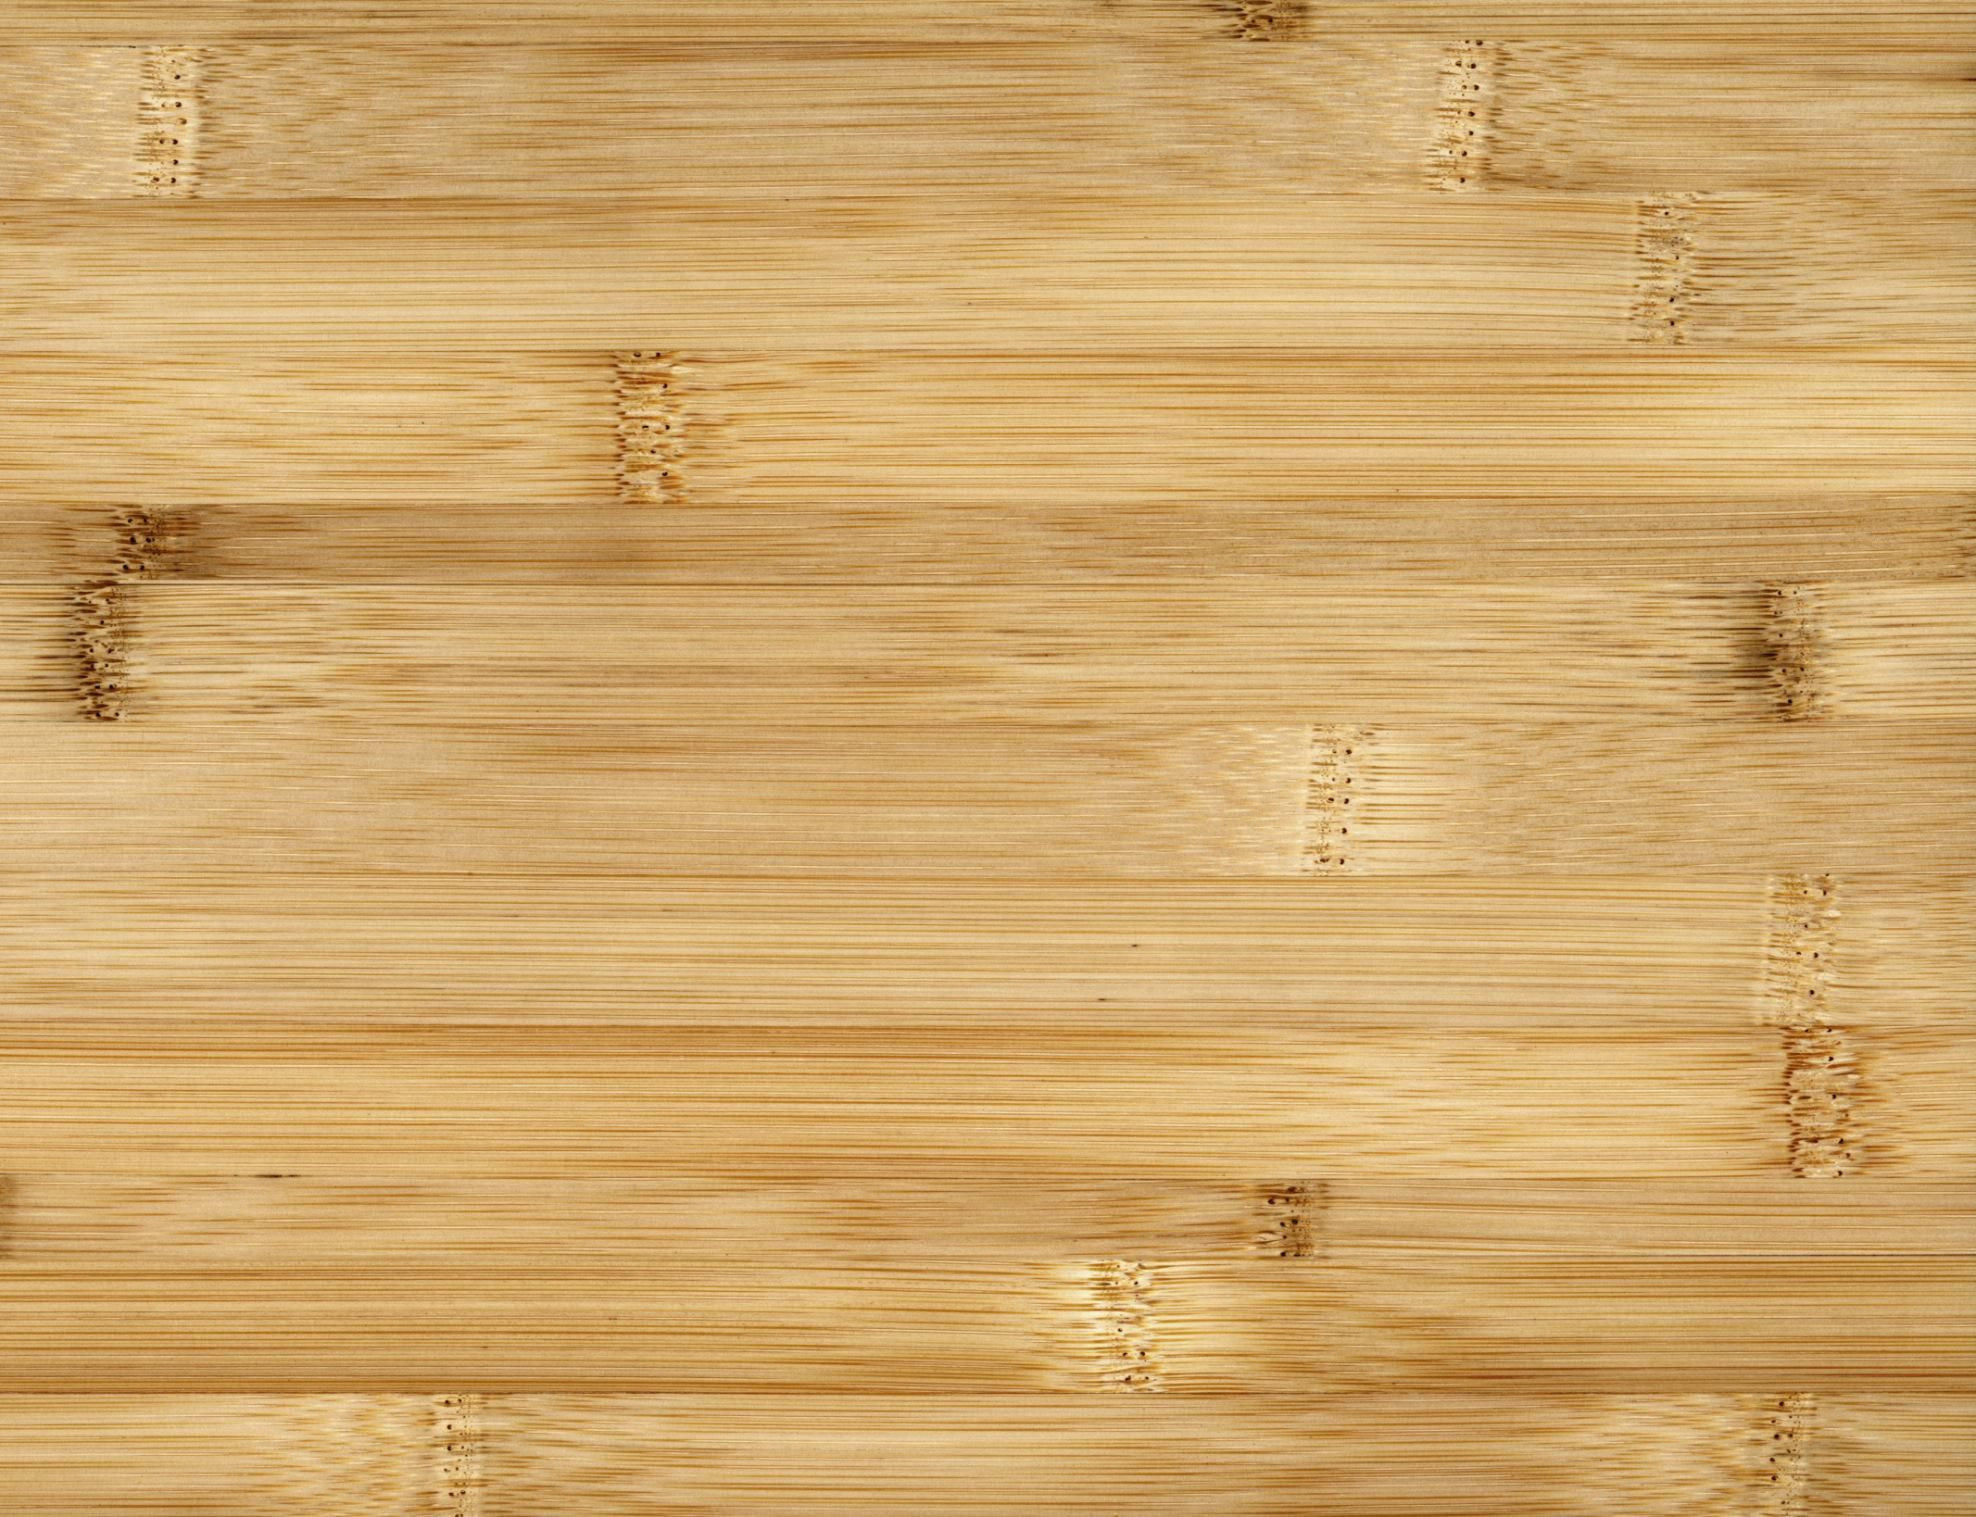 Hardwood Floor Installation Techniques Of How to Clean Bamboo Flooring Regarding 200266305 001 56a2fd815f9b58b7d0d000cd